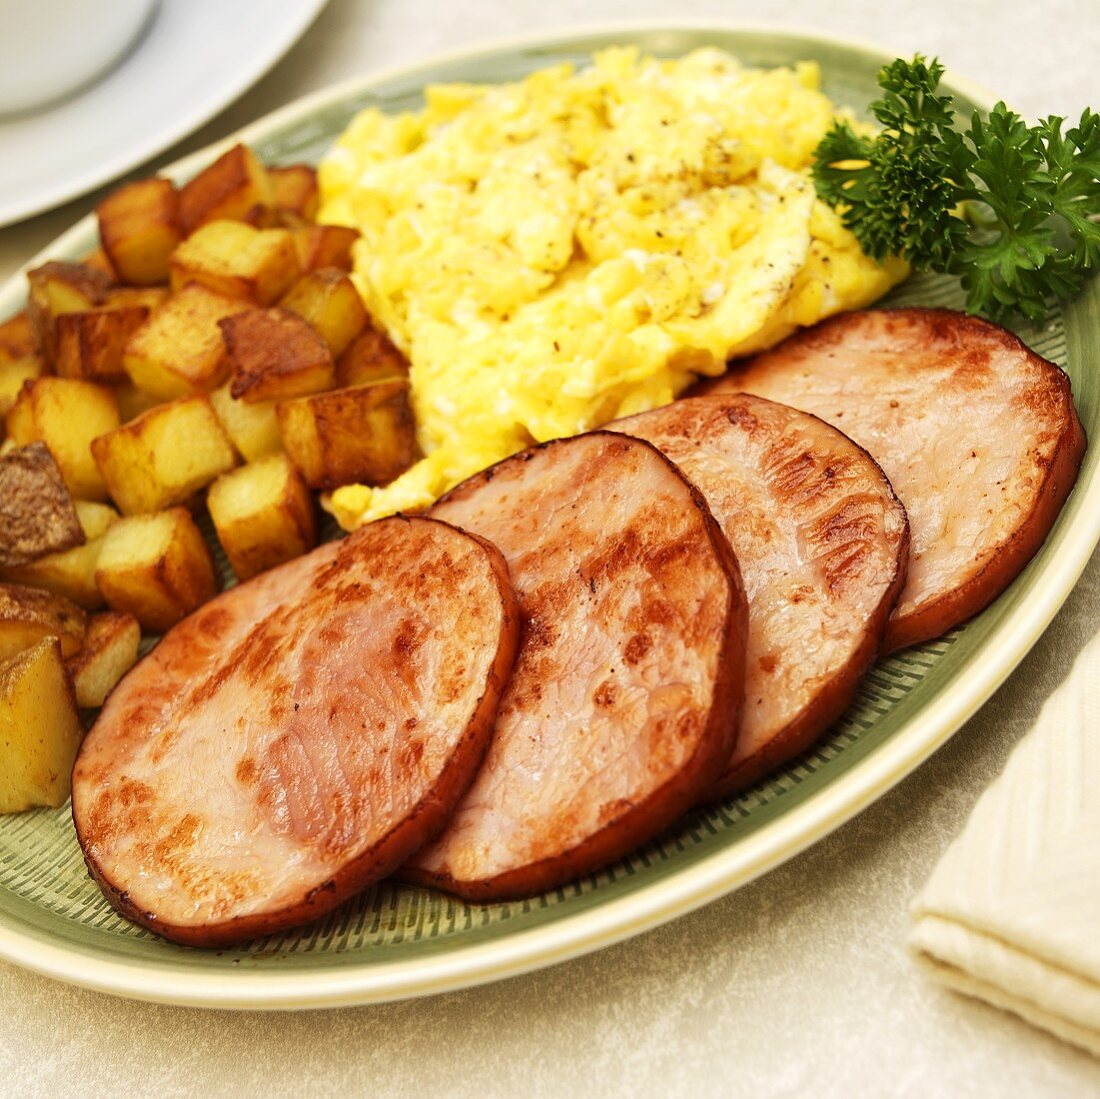 Breakfast Plate; Fried Canadian Bacon, Eggs and Home Fries